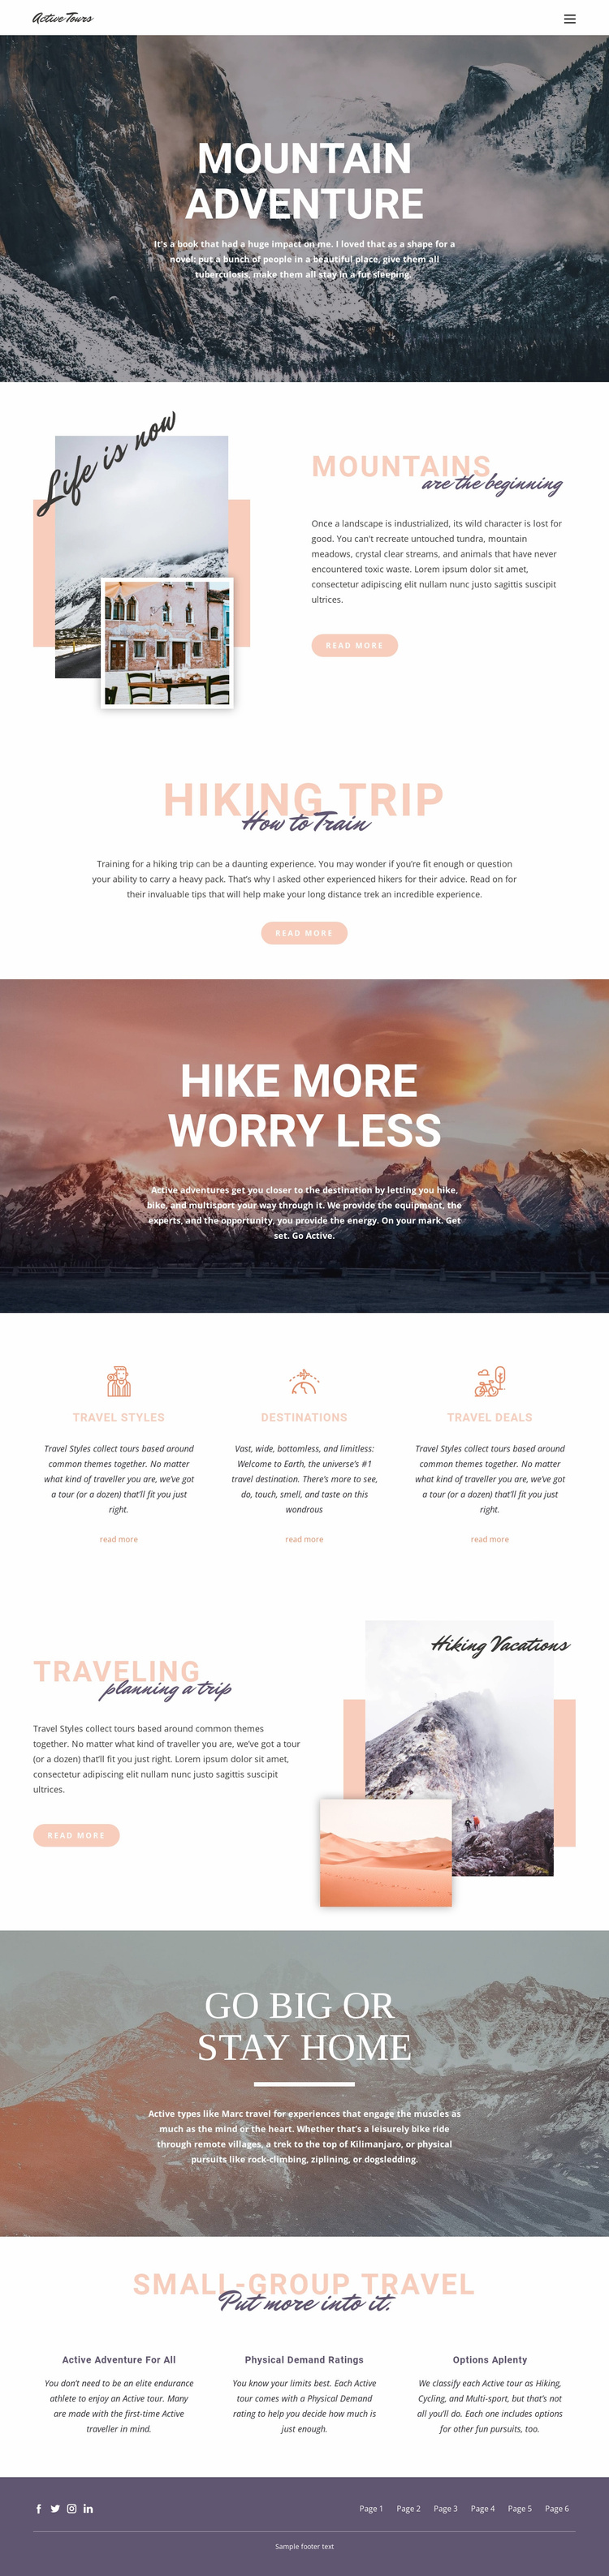 Guided backpacking trips Website Template